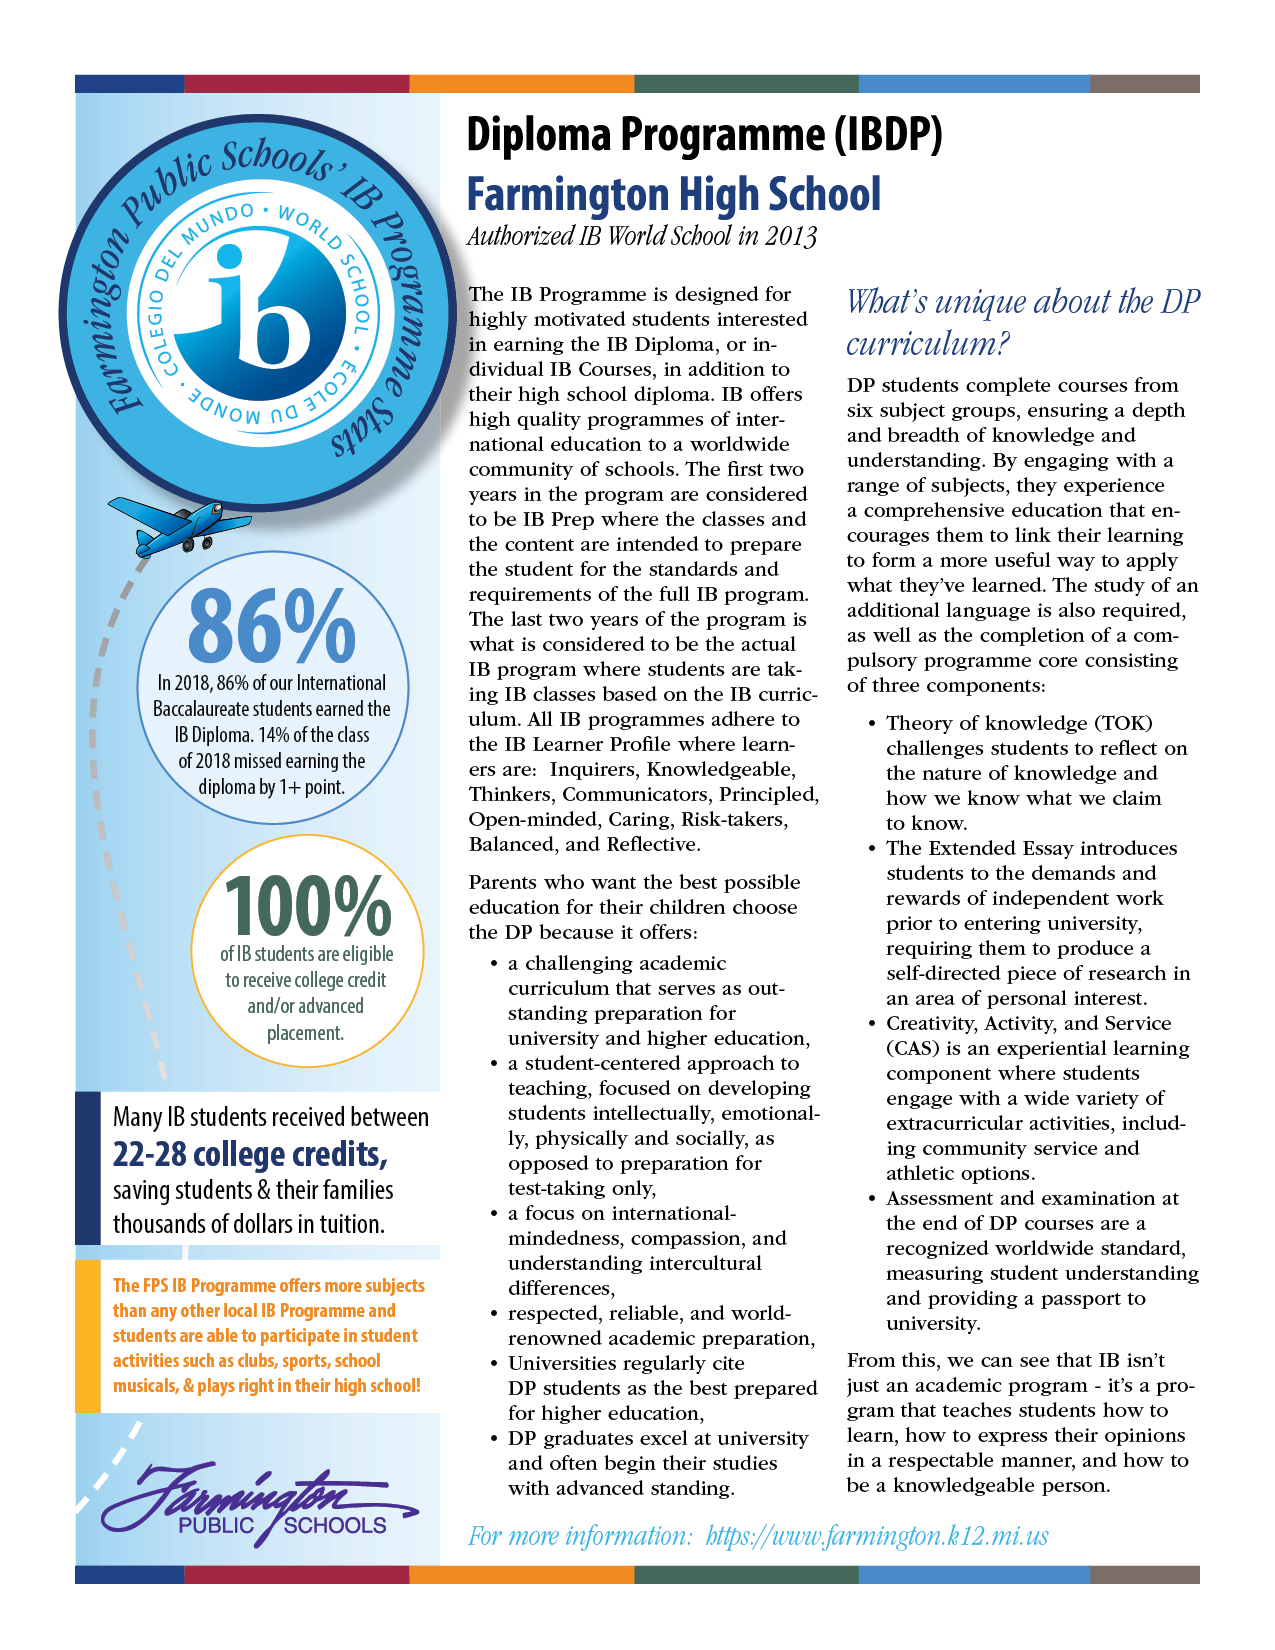 IB Overview / IB Overview